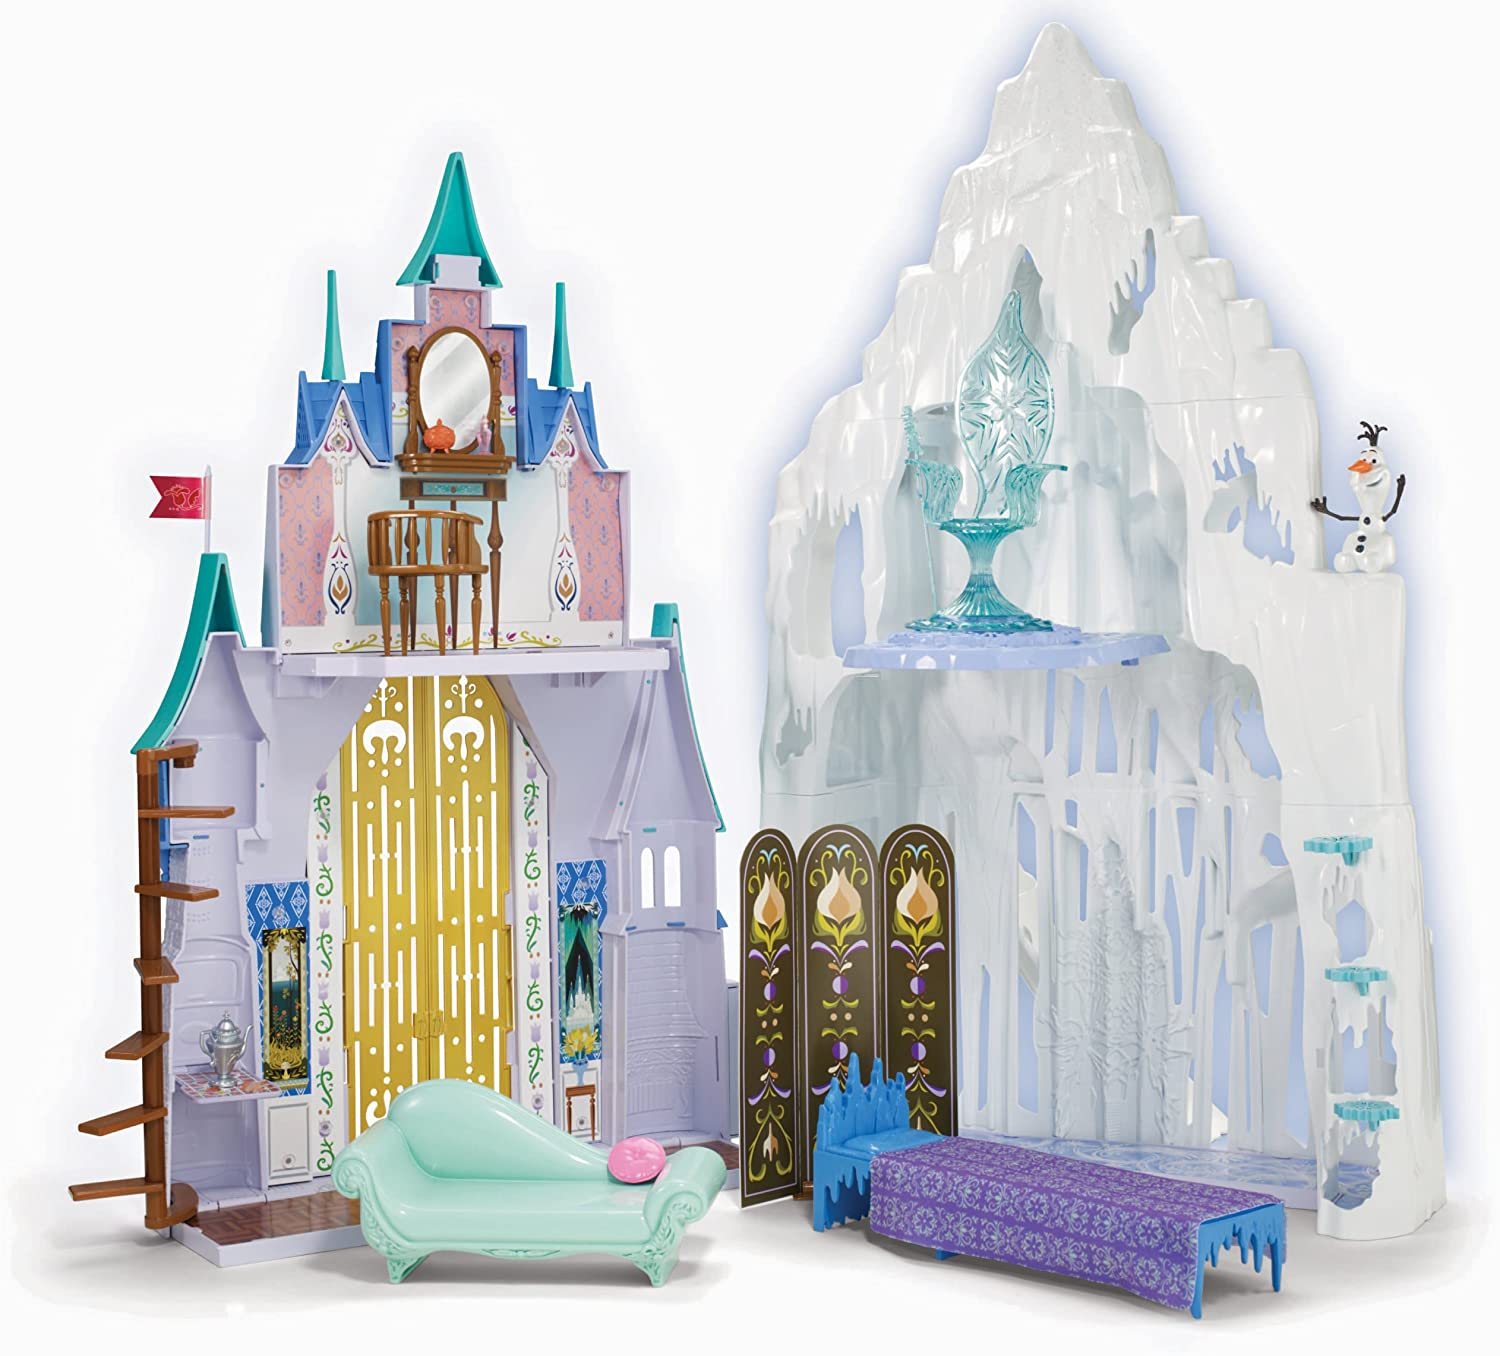 Great Xmas Gift Frozen Elsa Ice Castle Palace Playset Toy Princess Elsa /& Anna